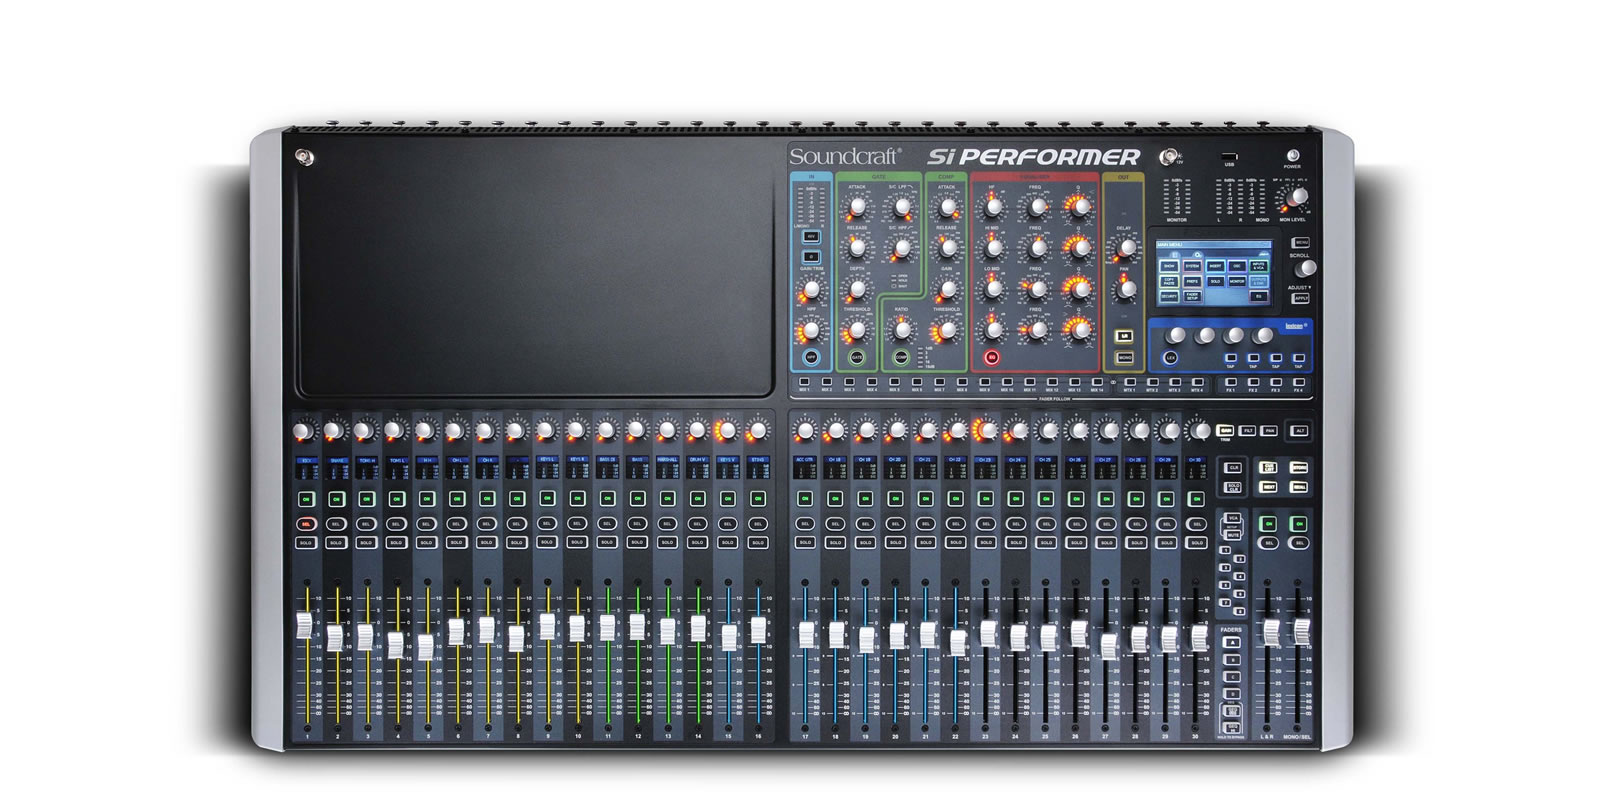 Soundcraft Si Performer 3 - 32 Mic preamp 8 stereo Digital Audio